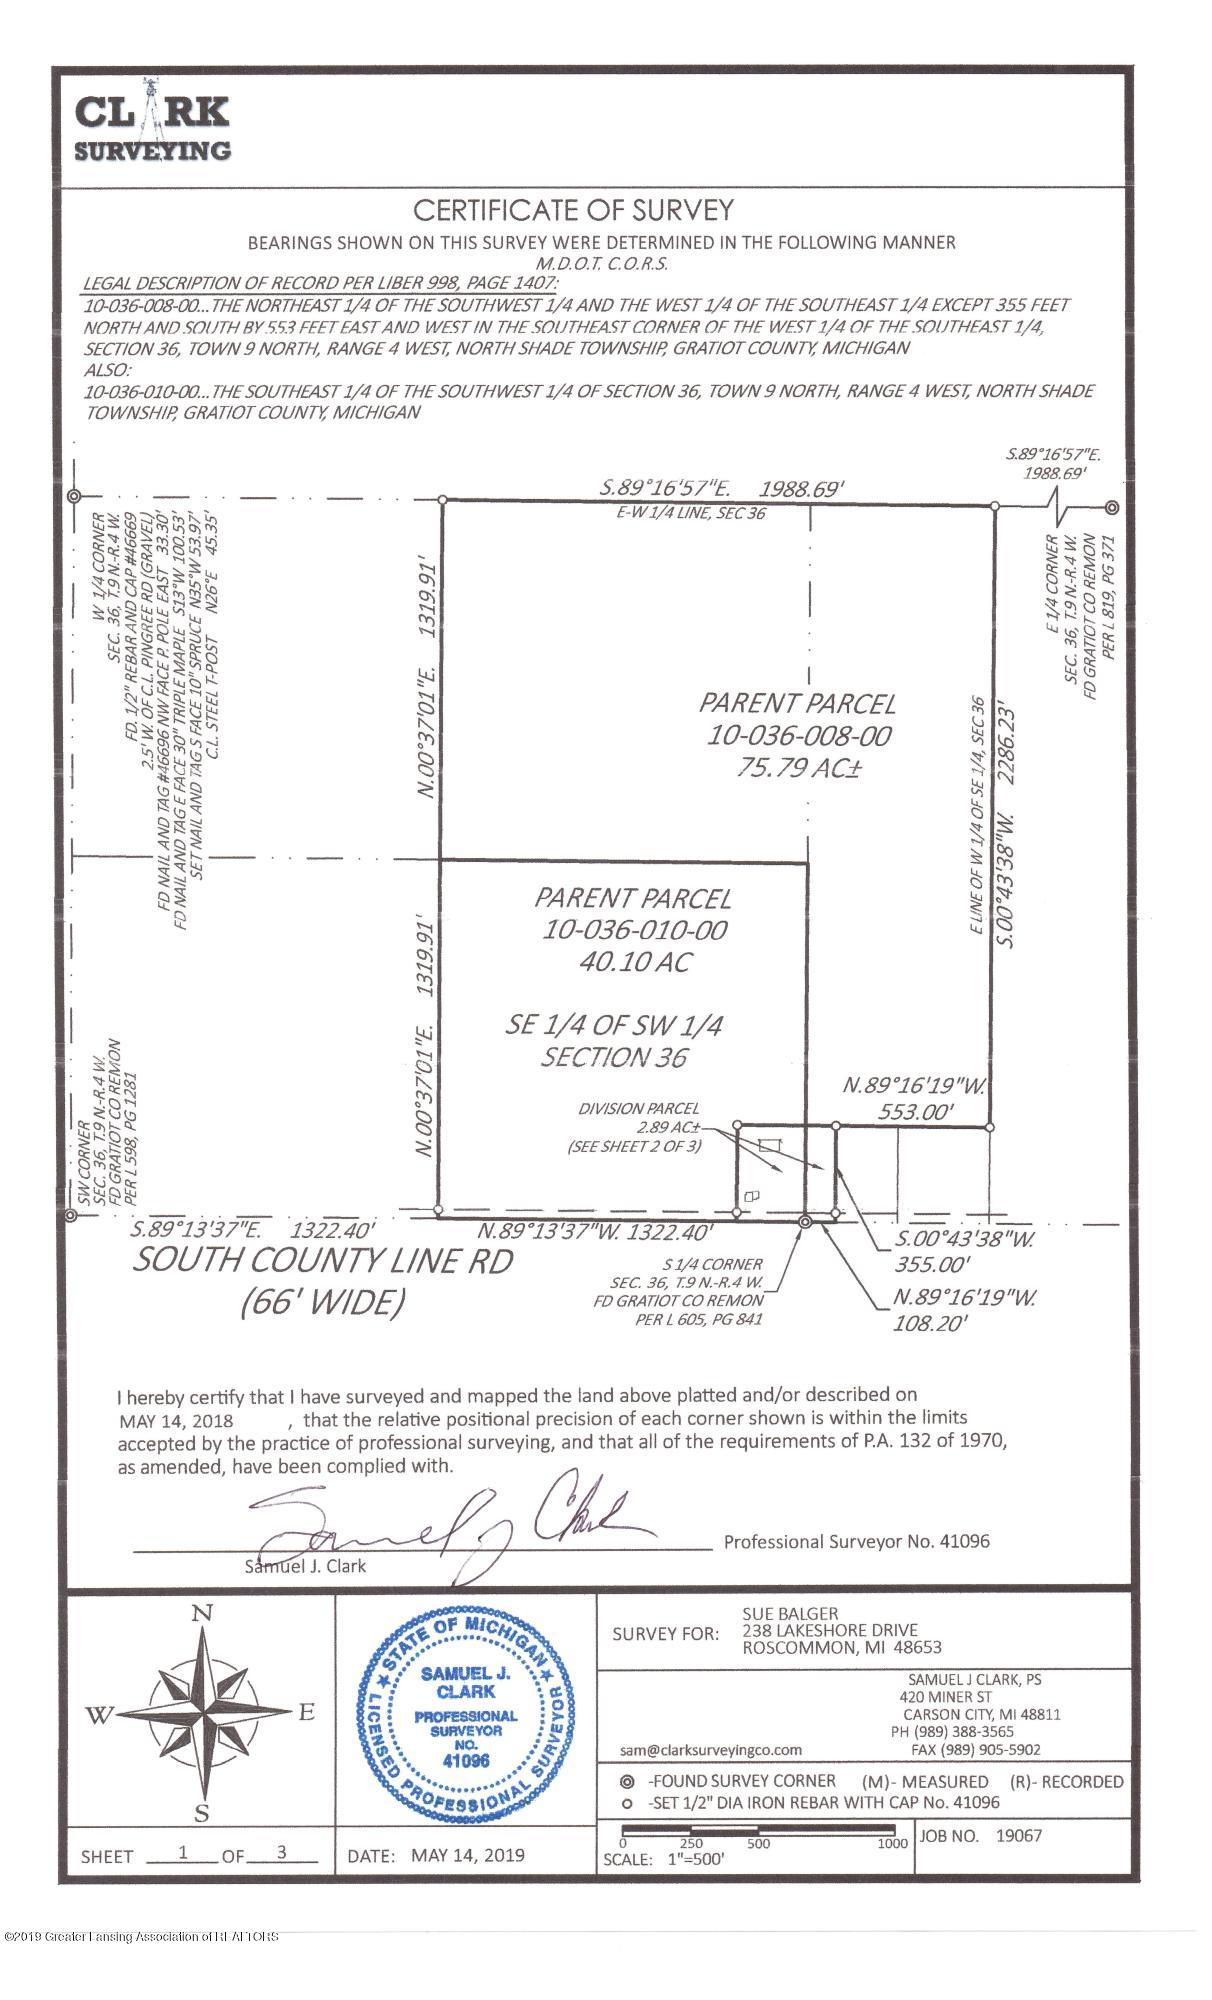 6512 W South Countyline Rd - balger_survey_Page_1 - 13